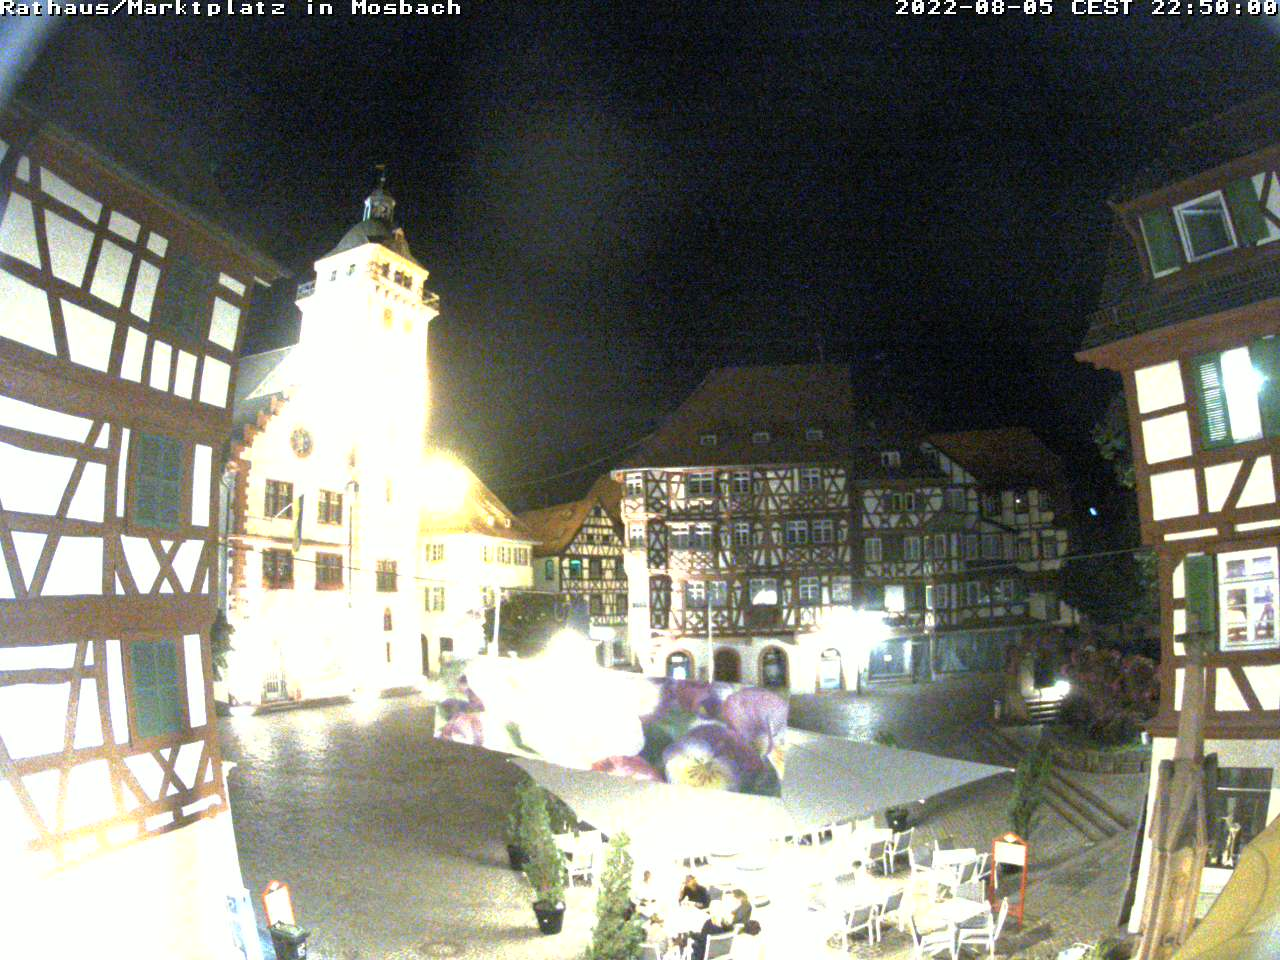 Mosbach Wed. 22:55